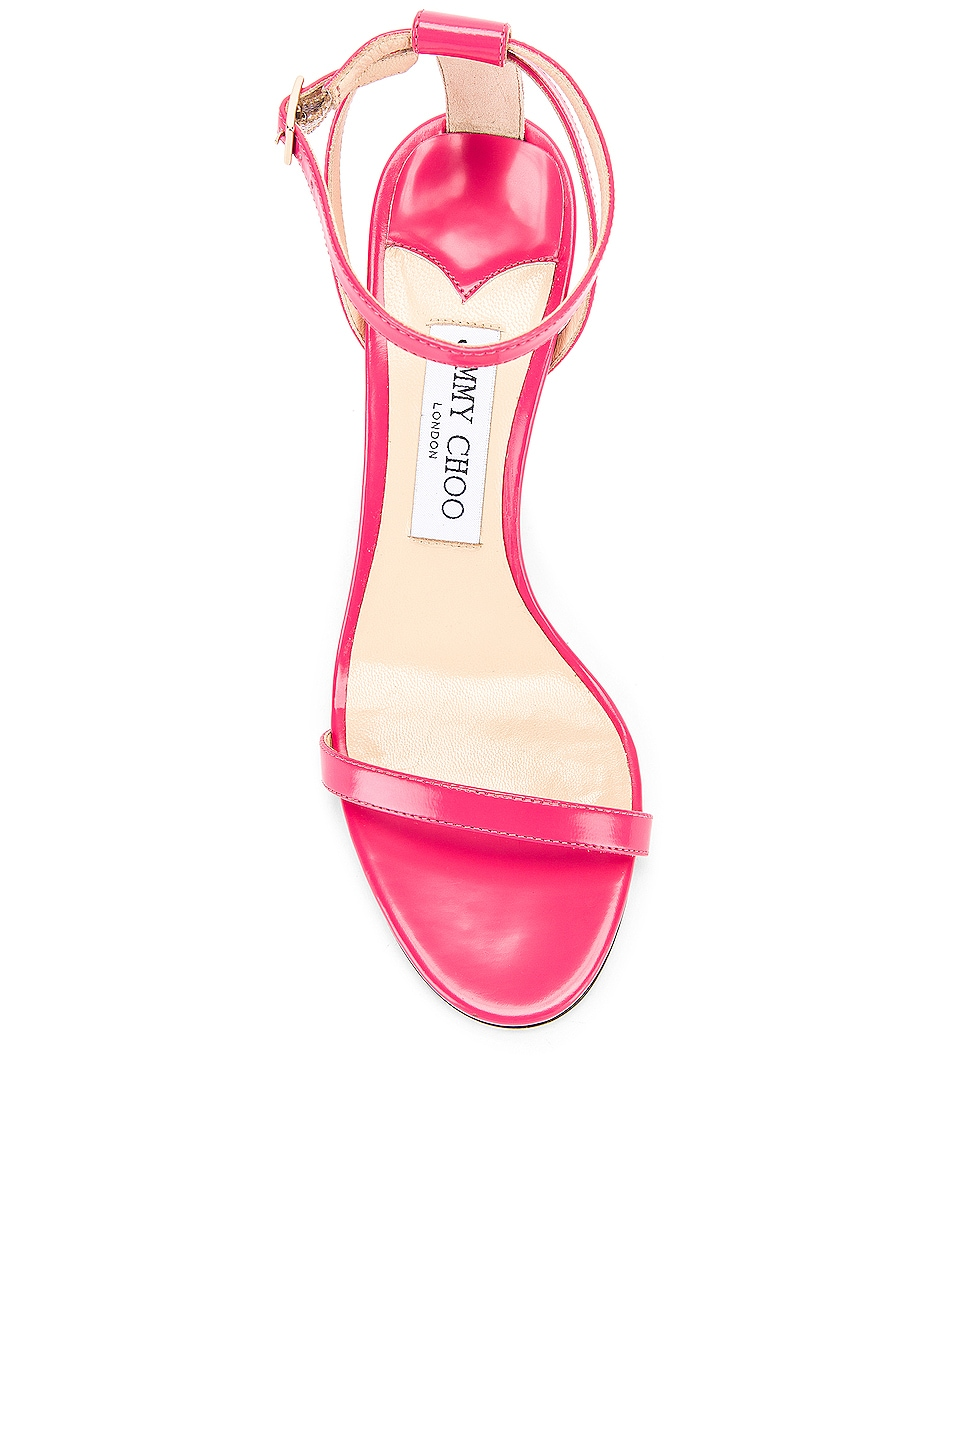 Image 4 of Jimmy Choo Minny 85 Liquid Leather Sandal in Bubble